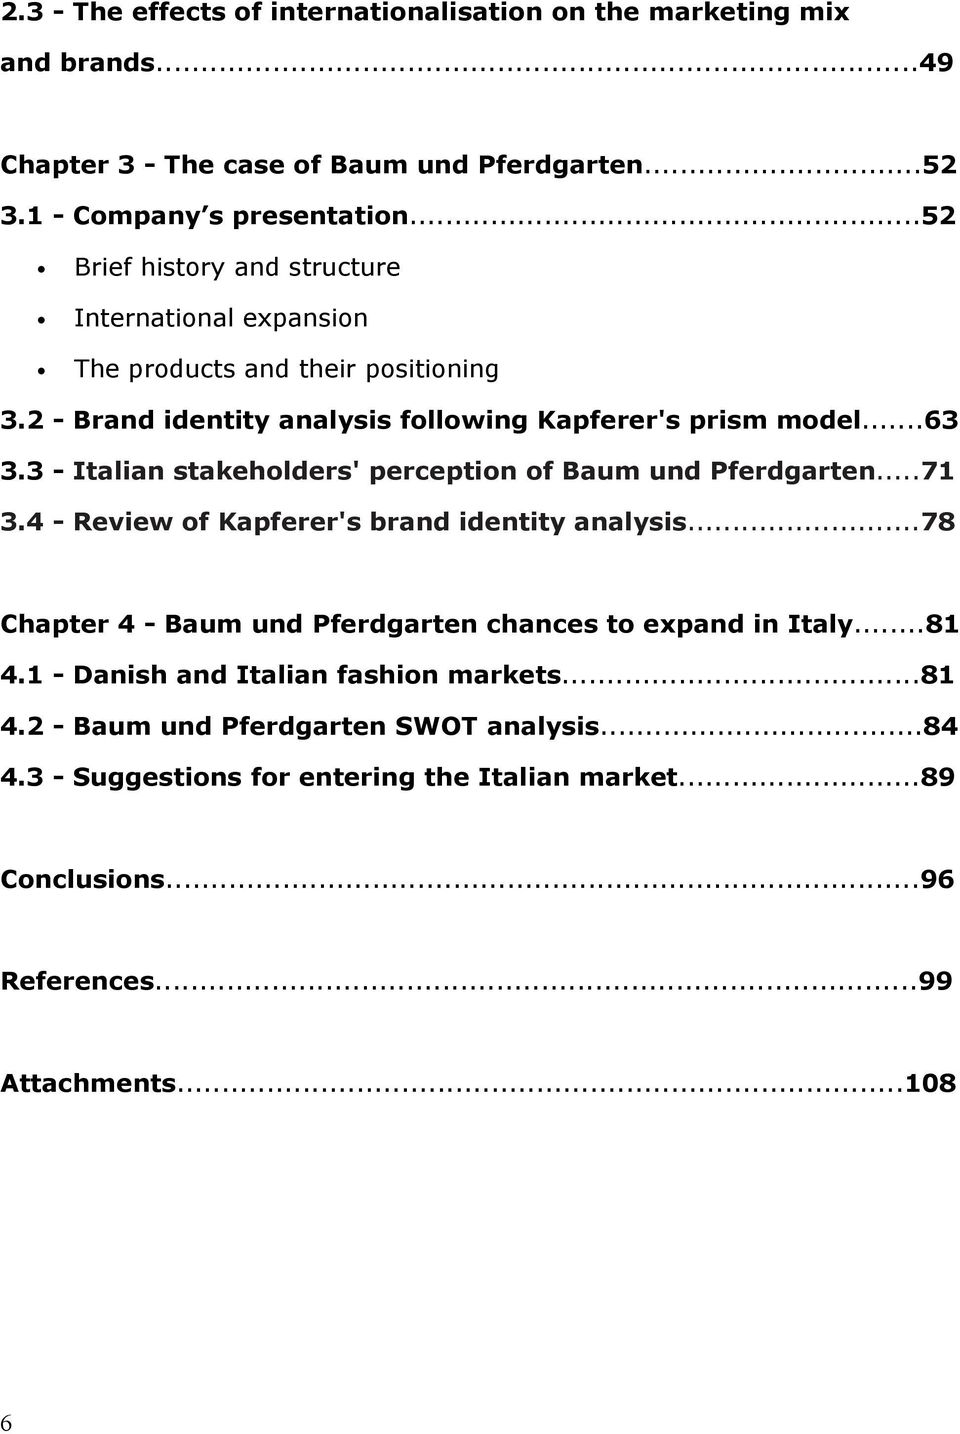 3 - Italian stakeholders' perception of Baum und Pferdgarten...71 3.4 - Review of Kapferer's brand identity analysis.